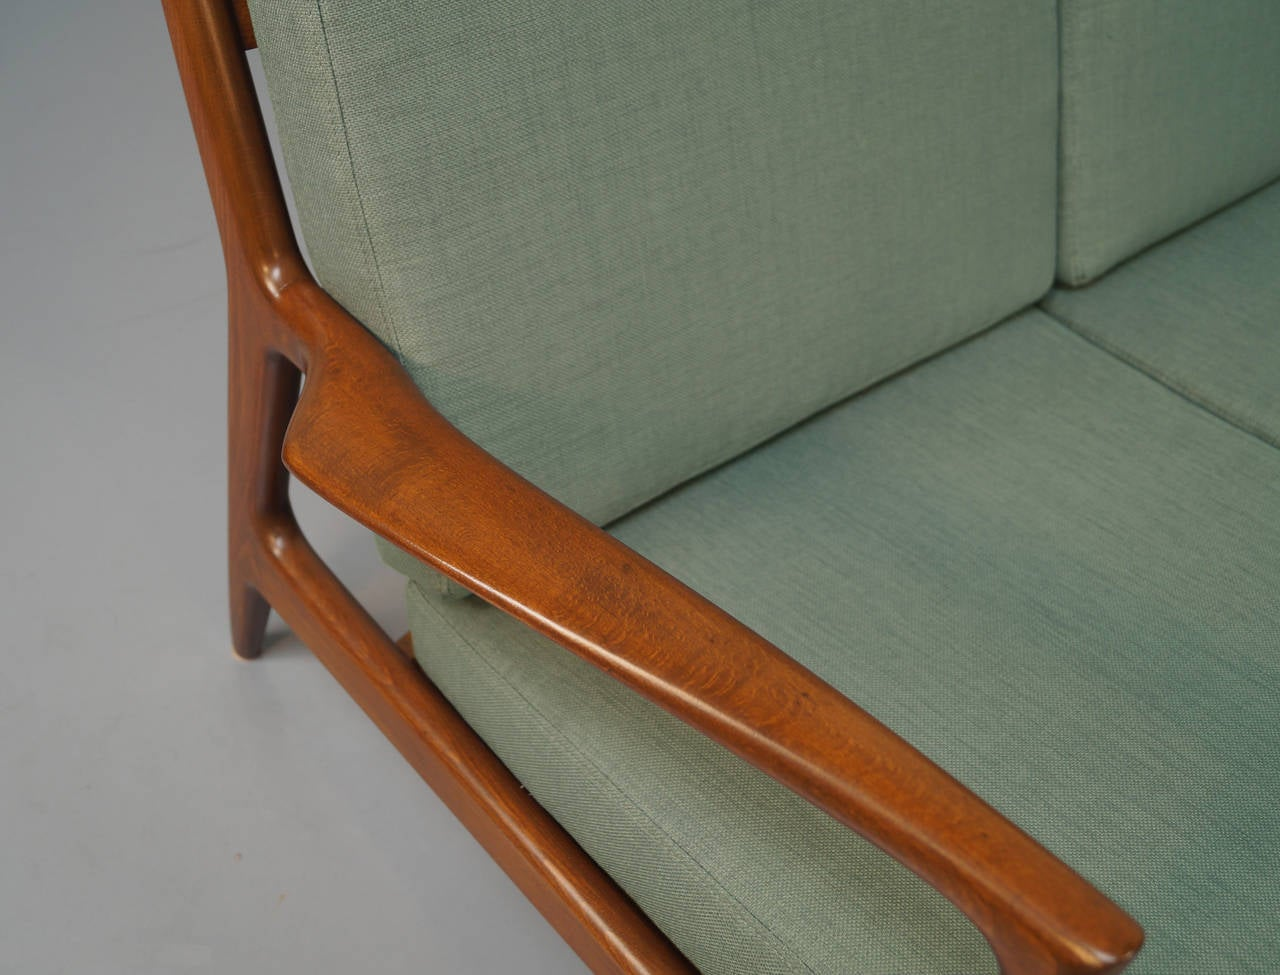 danish modern sofa by ib kofodlarsen at stdibs - danish modern sofa by ib kofodlarsen